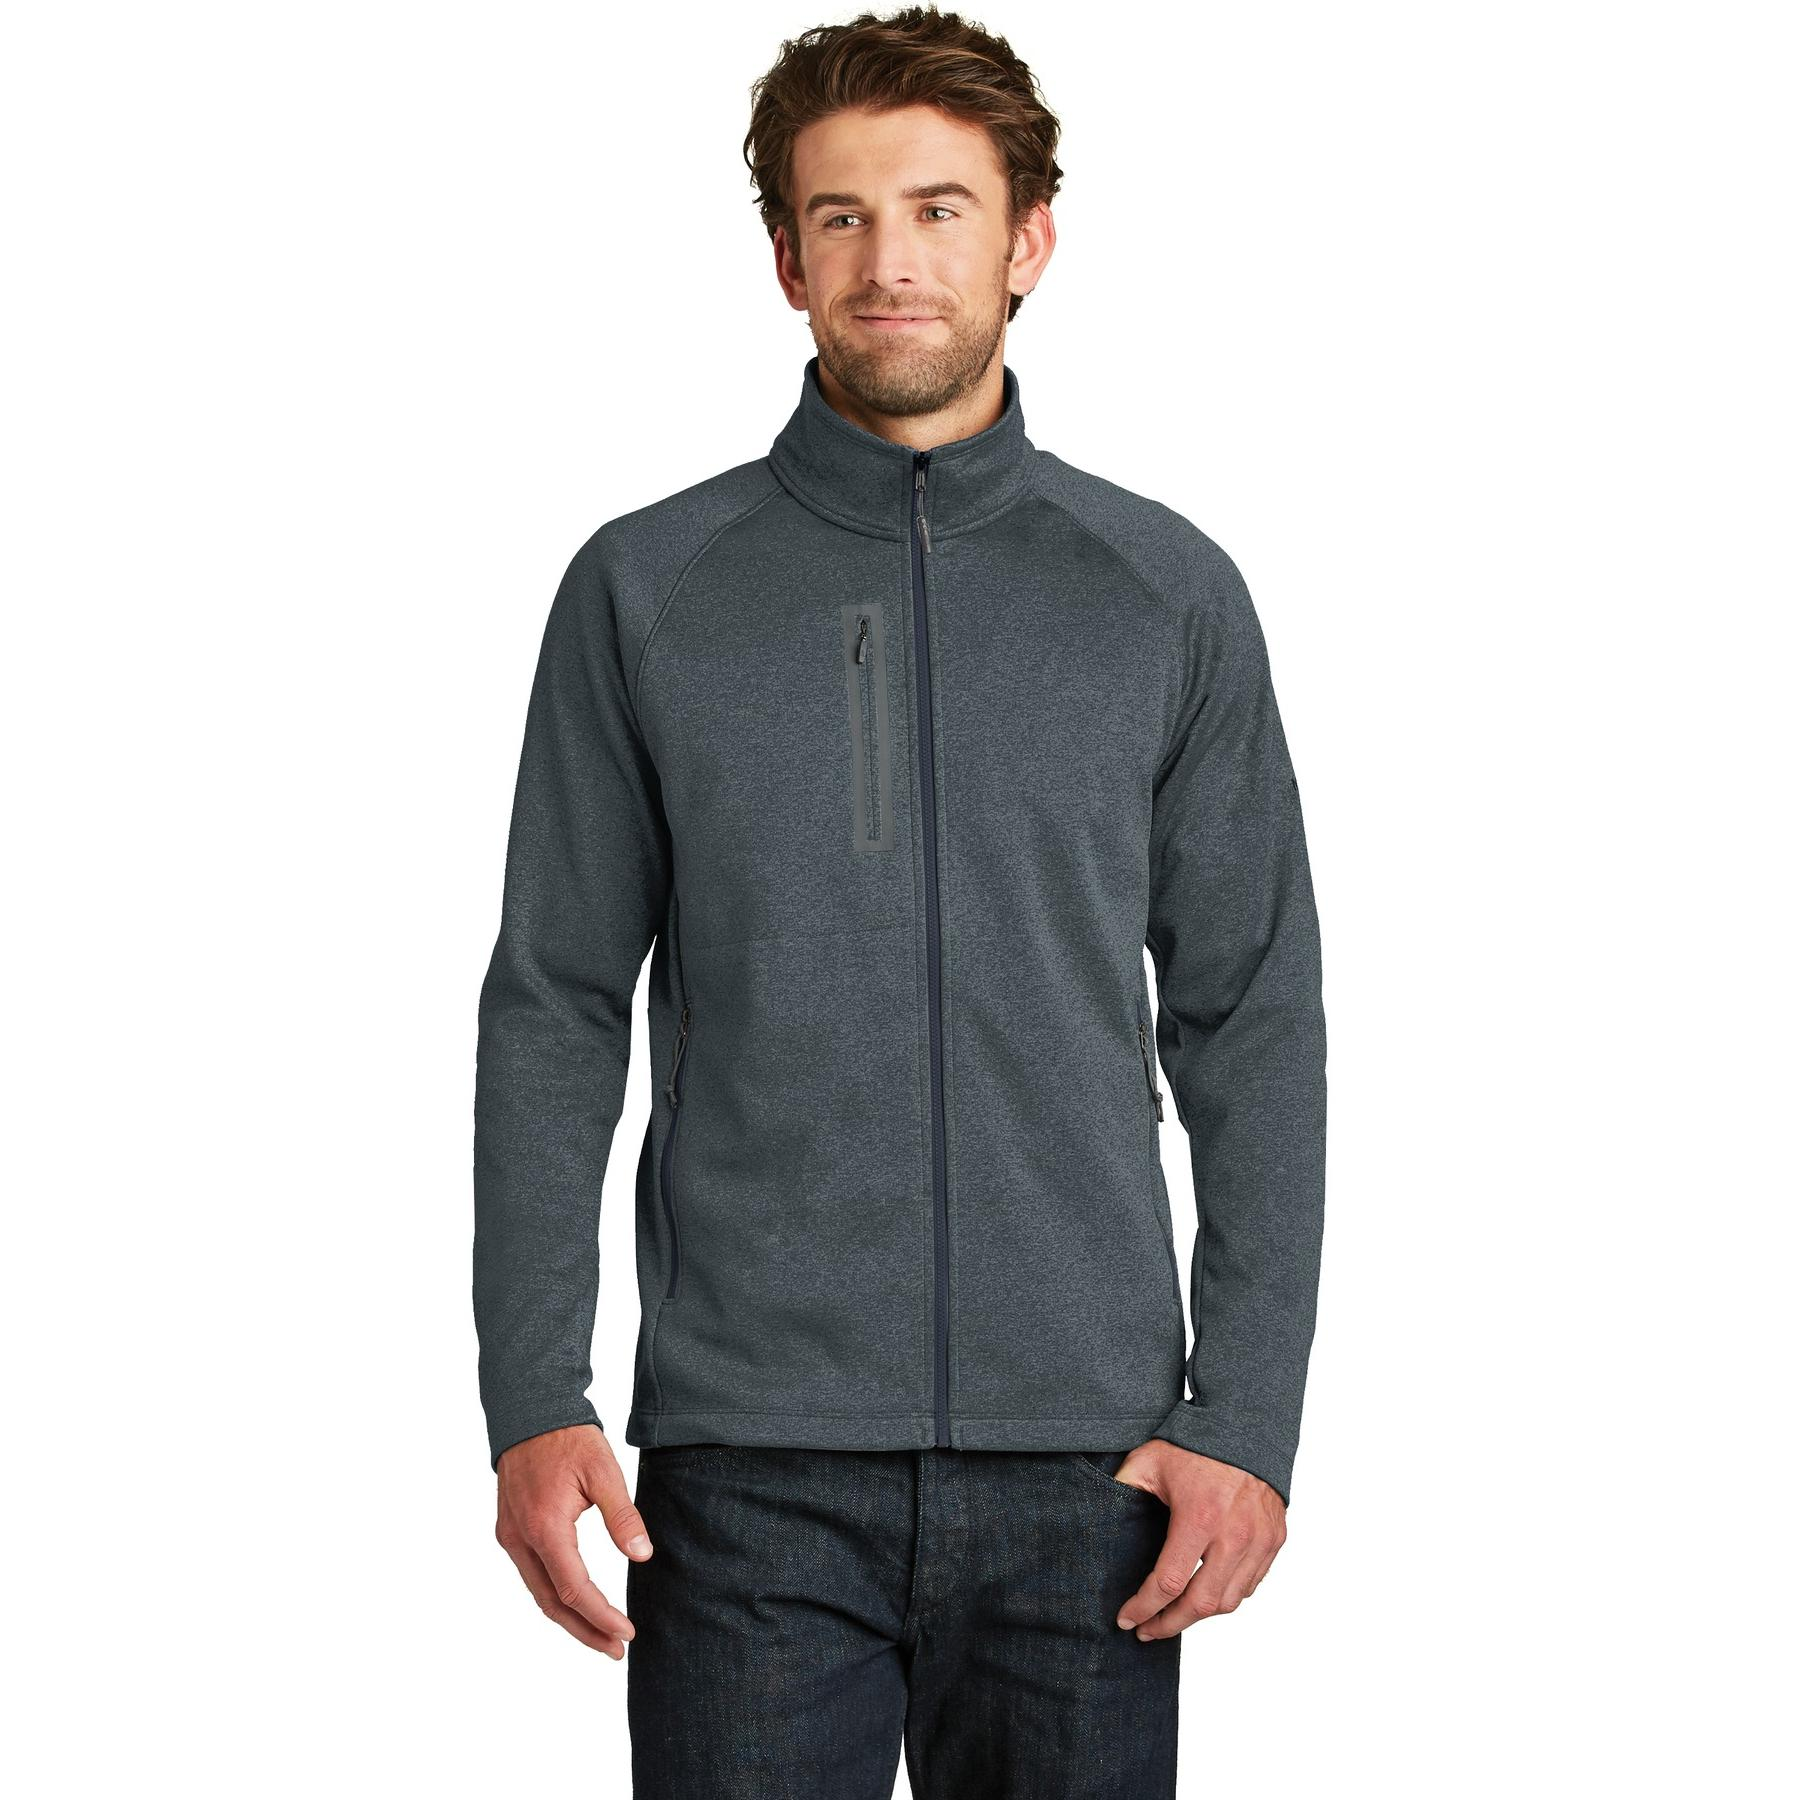 a48c352430ad The North Face NF0A3LH9 Canyon Flats Fleece Jacket - Urban Navy Heather.  NF-NF0A3LH9-Urban-Navy-Heather